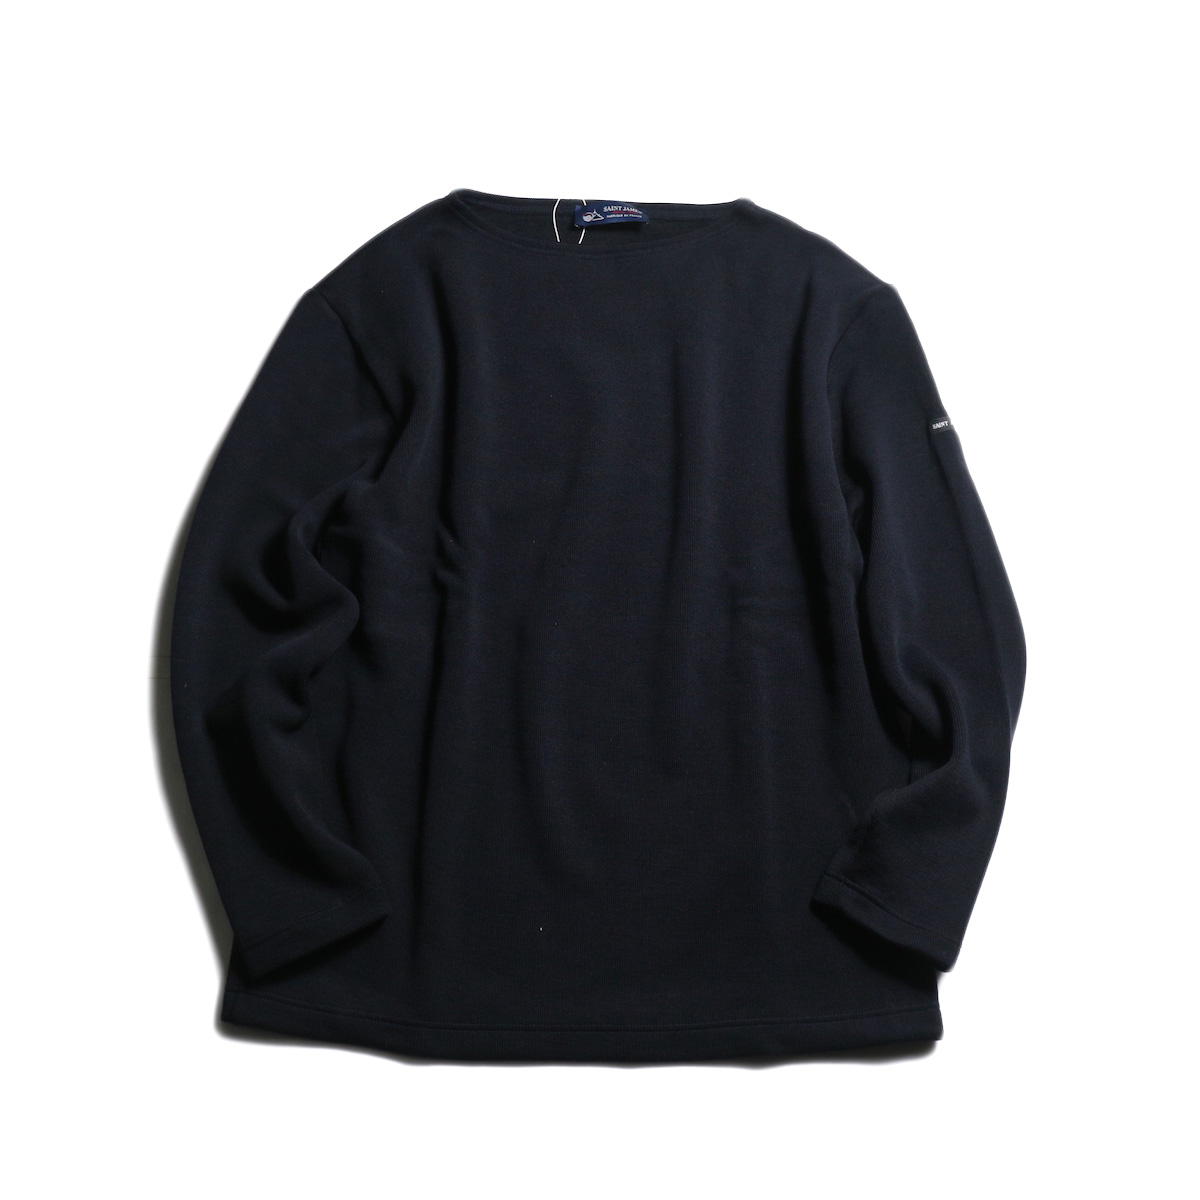 SAINT JAMES / DOUBLEFACE SWEATER (Navy)